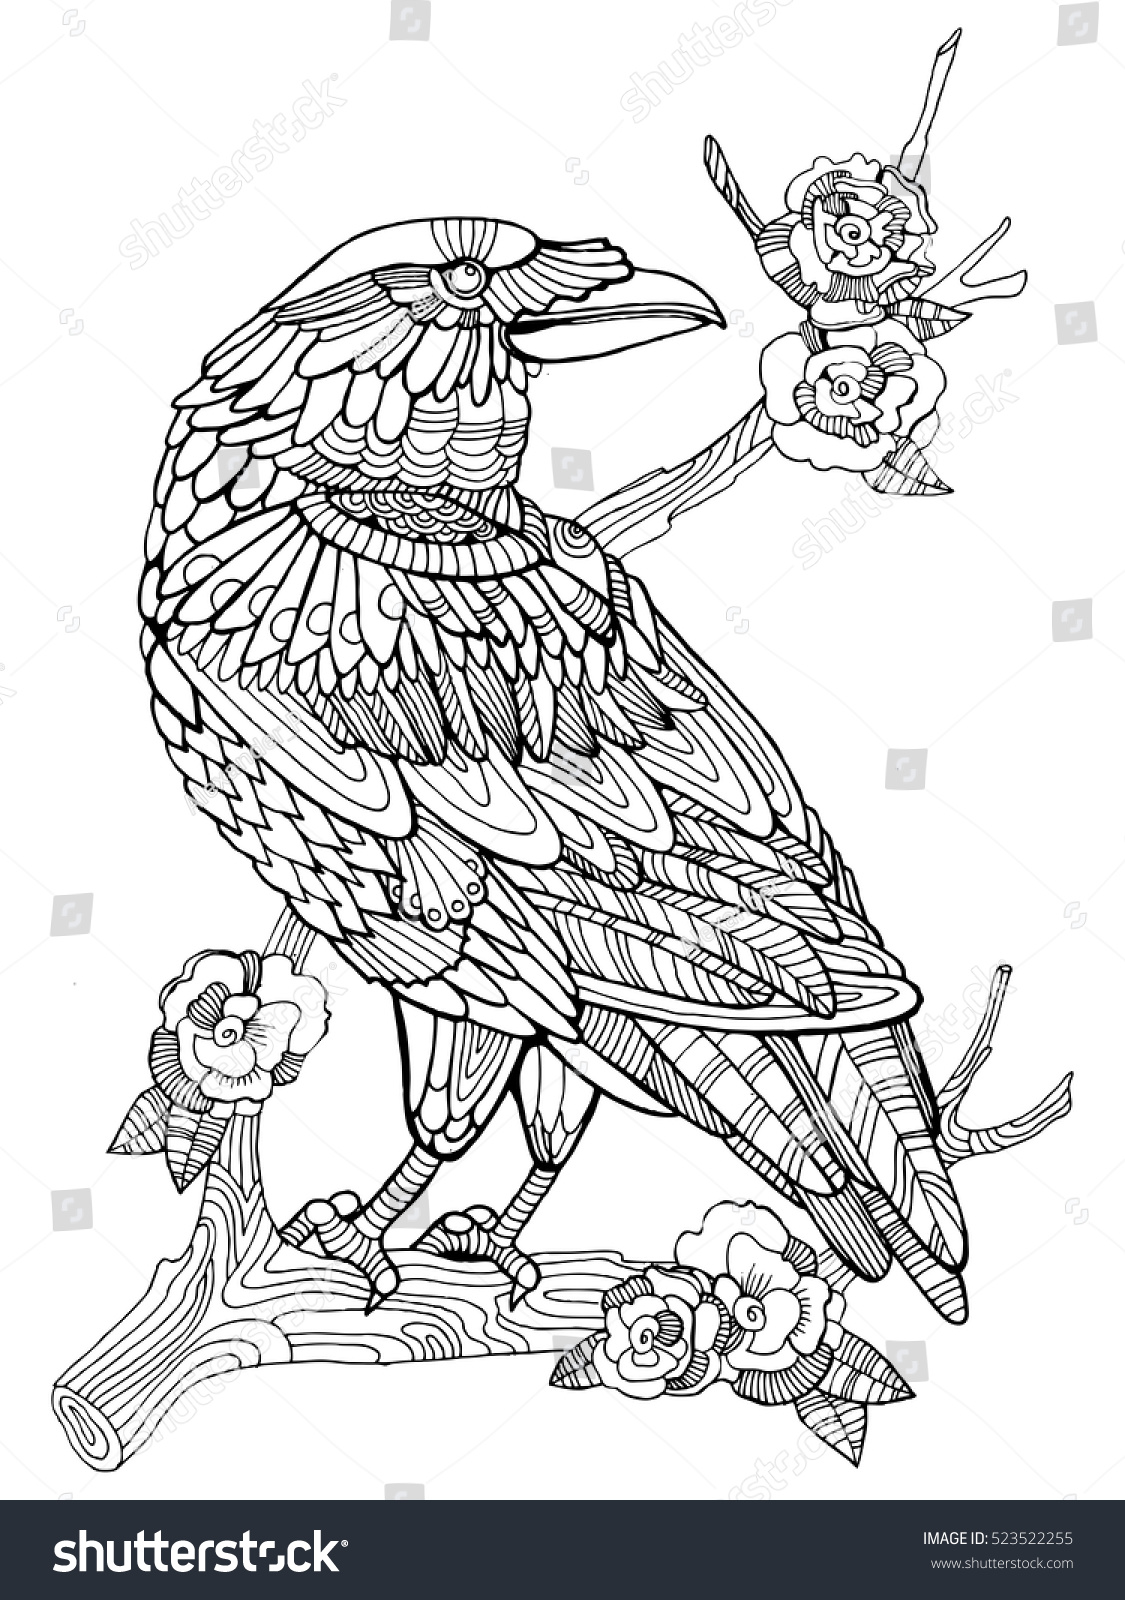 crow bird coloring book adults raster stock illustration 523522255